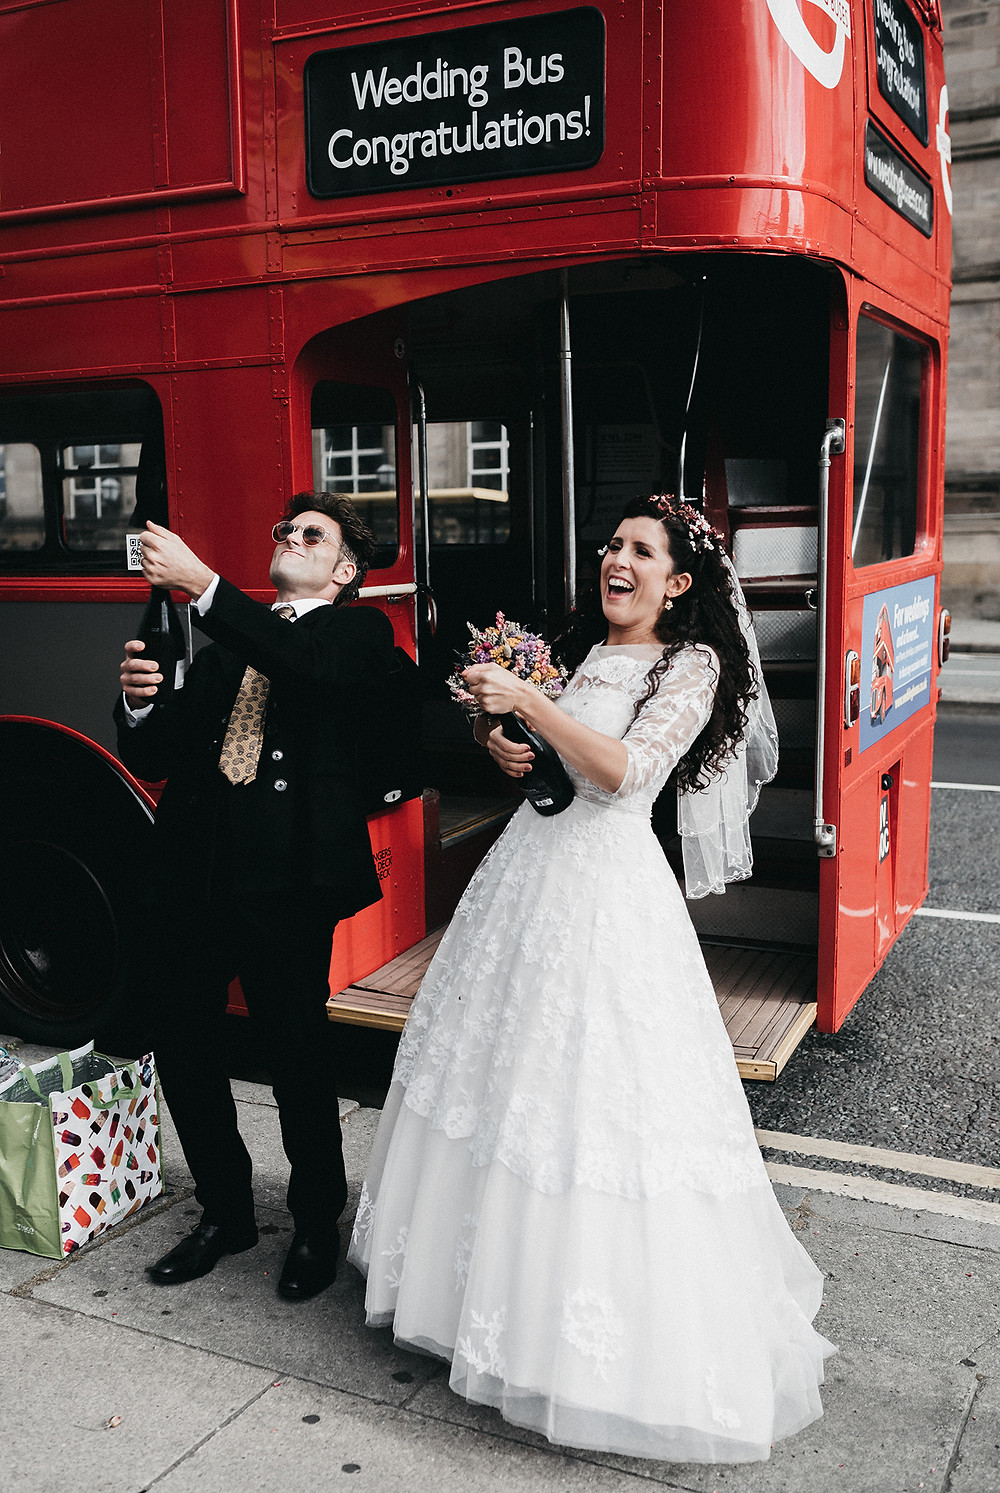 Wedding Photography in Liverpool City Centre | Urban wedding photo